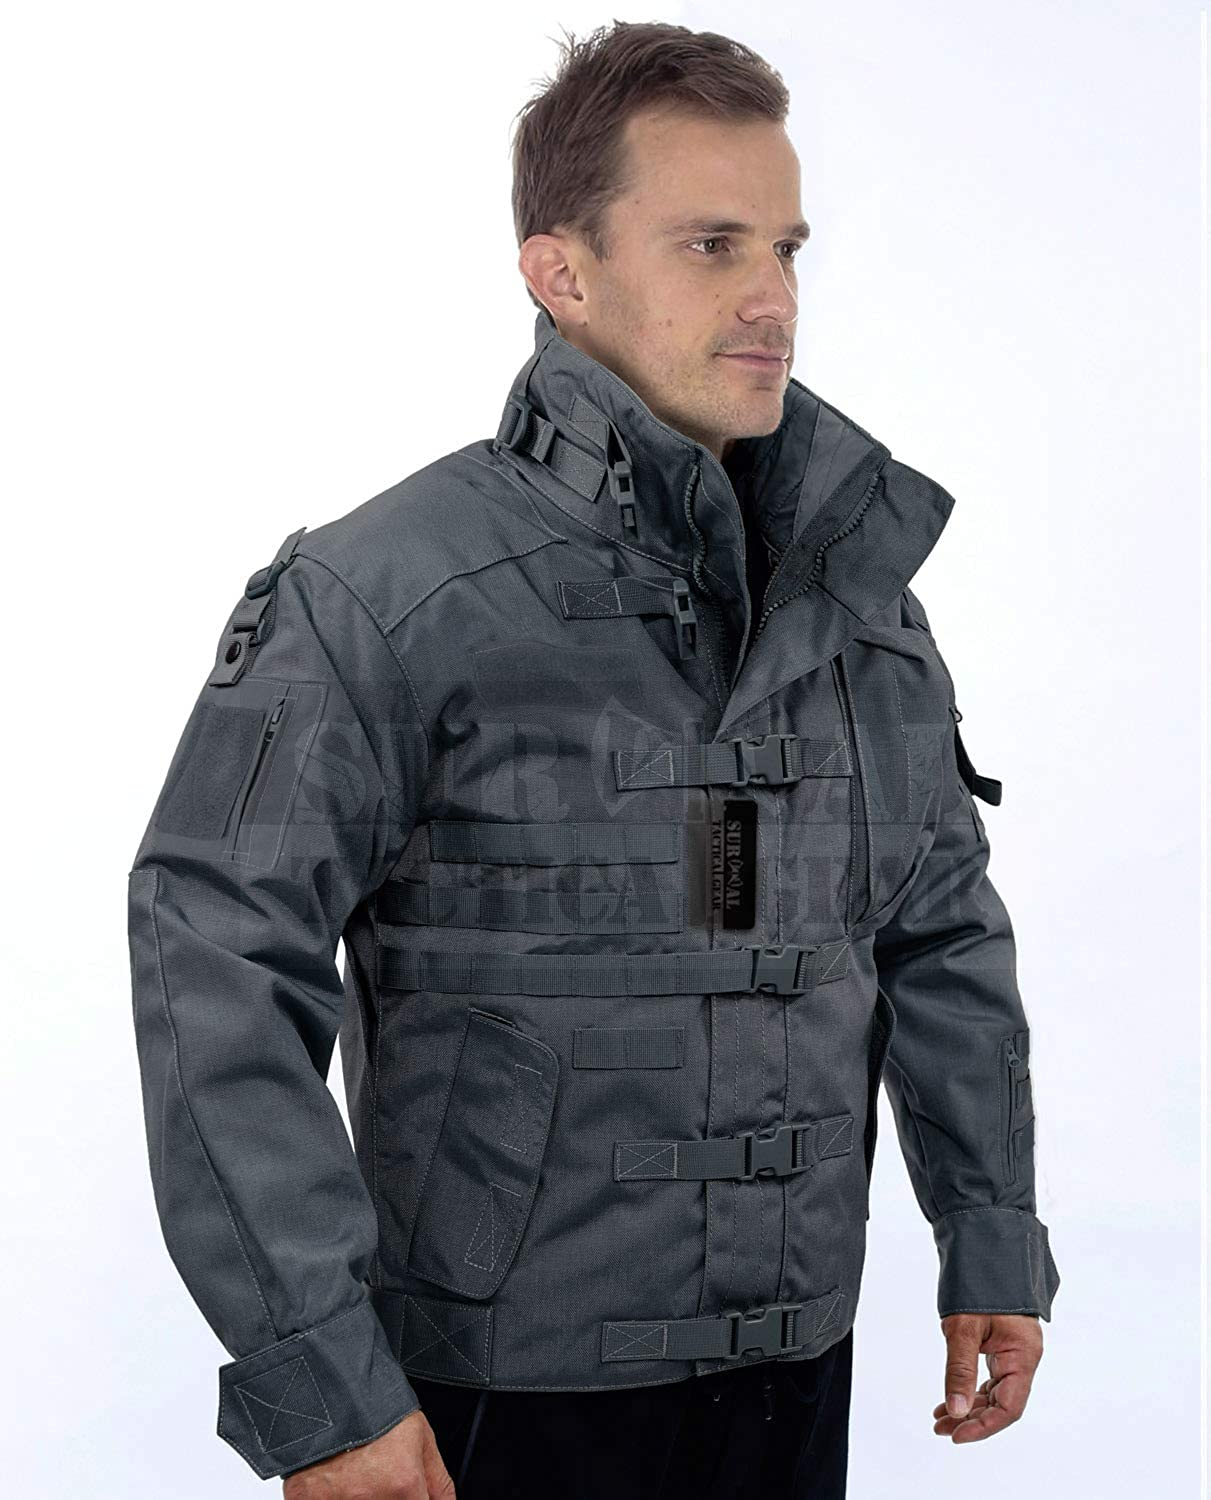 ZAPT 1000D CORDURA US Army Jacket Tactical Waterproof Military Excellent Max 65% OFF W